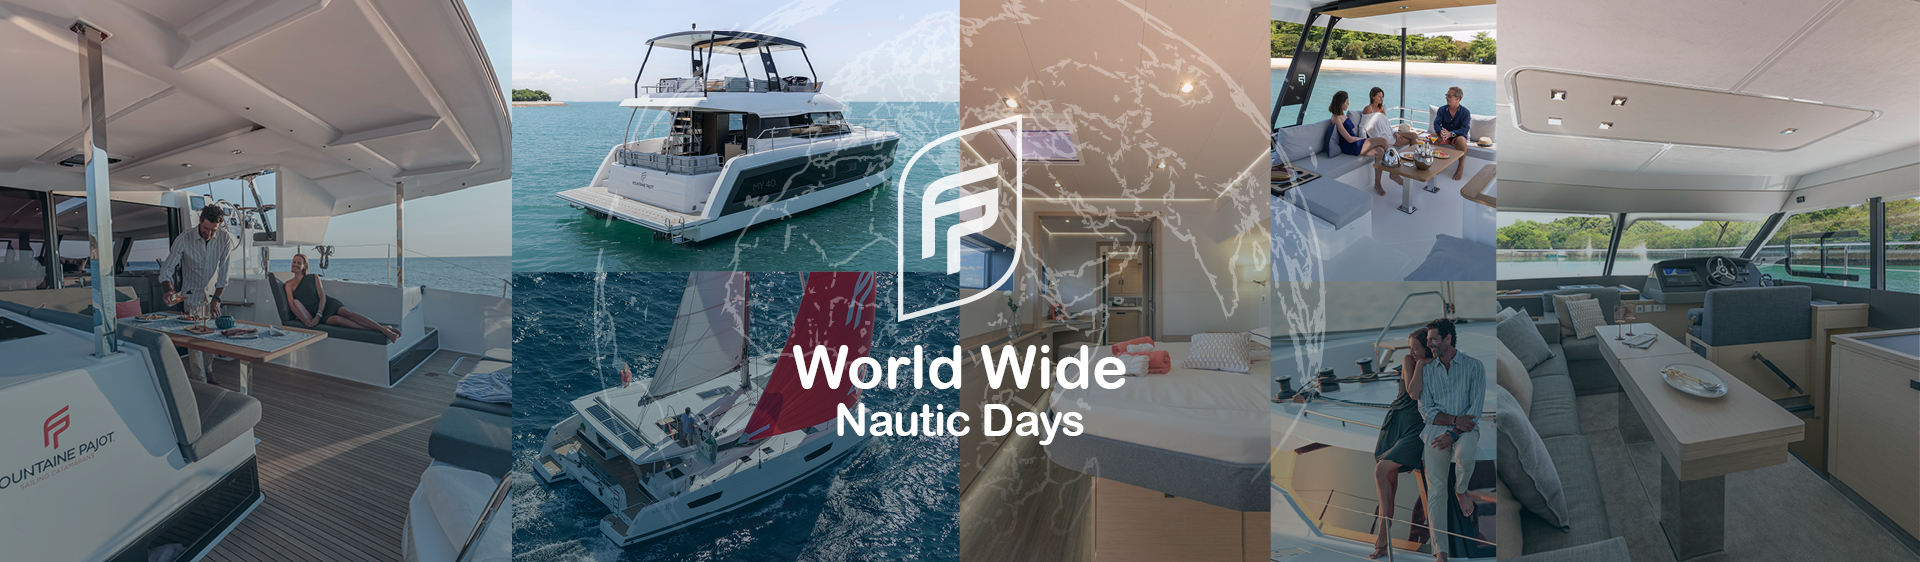 Fountaine Pajot Online Nautic Days